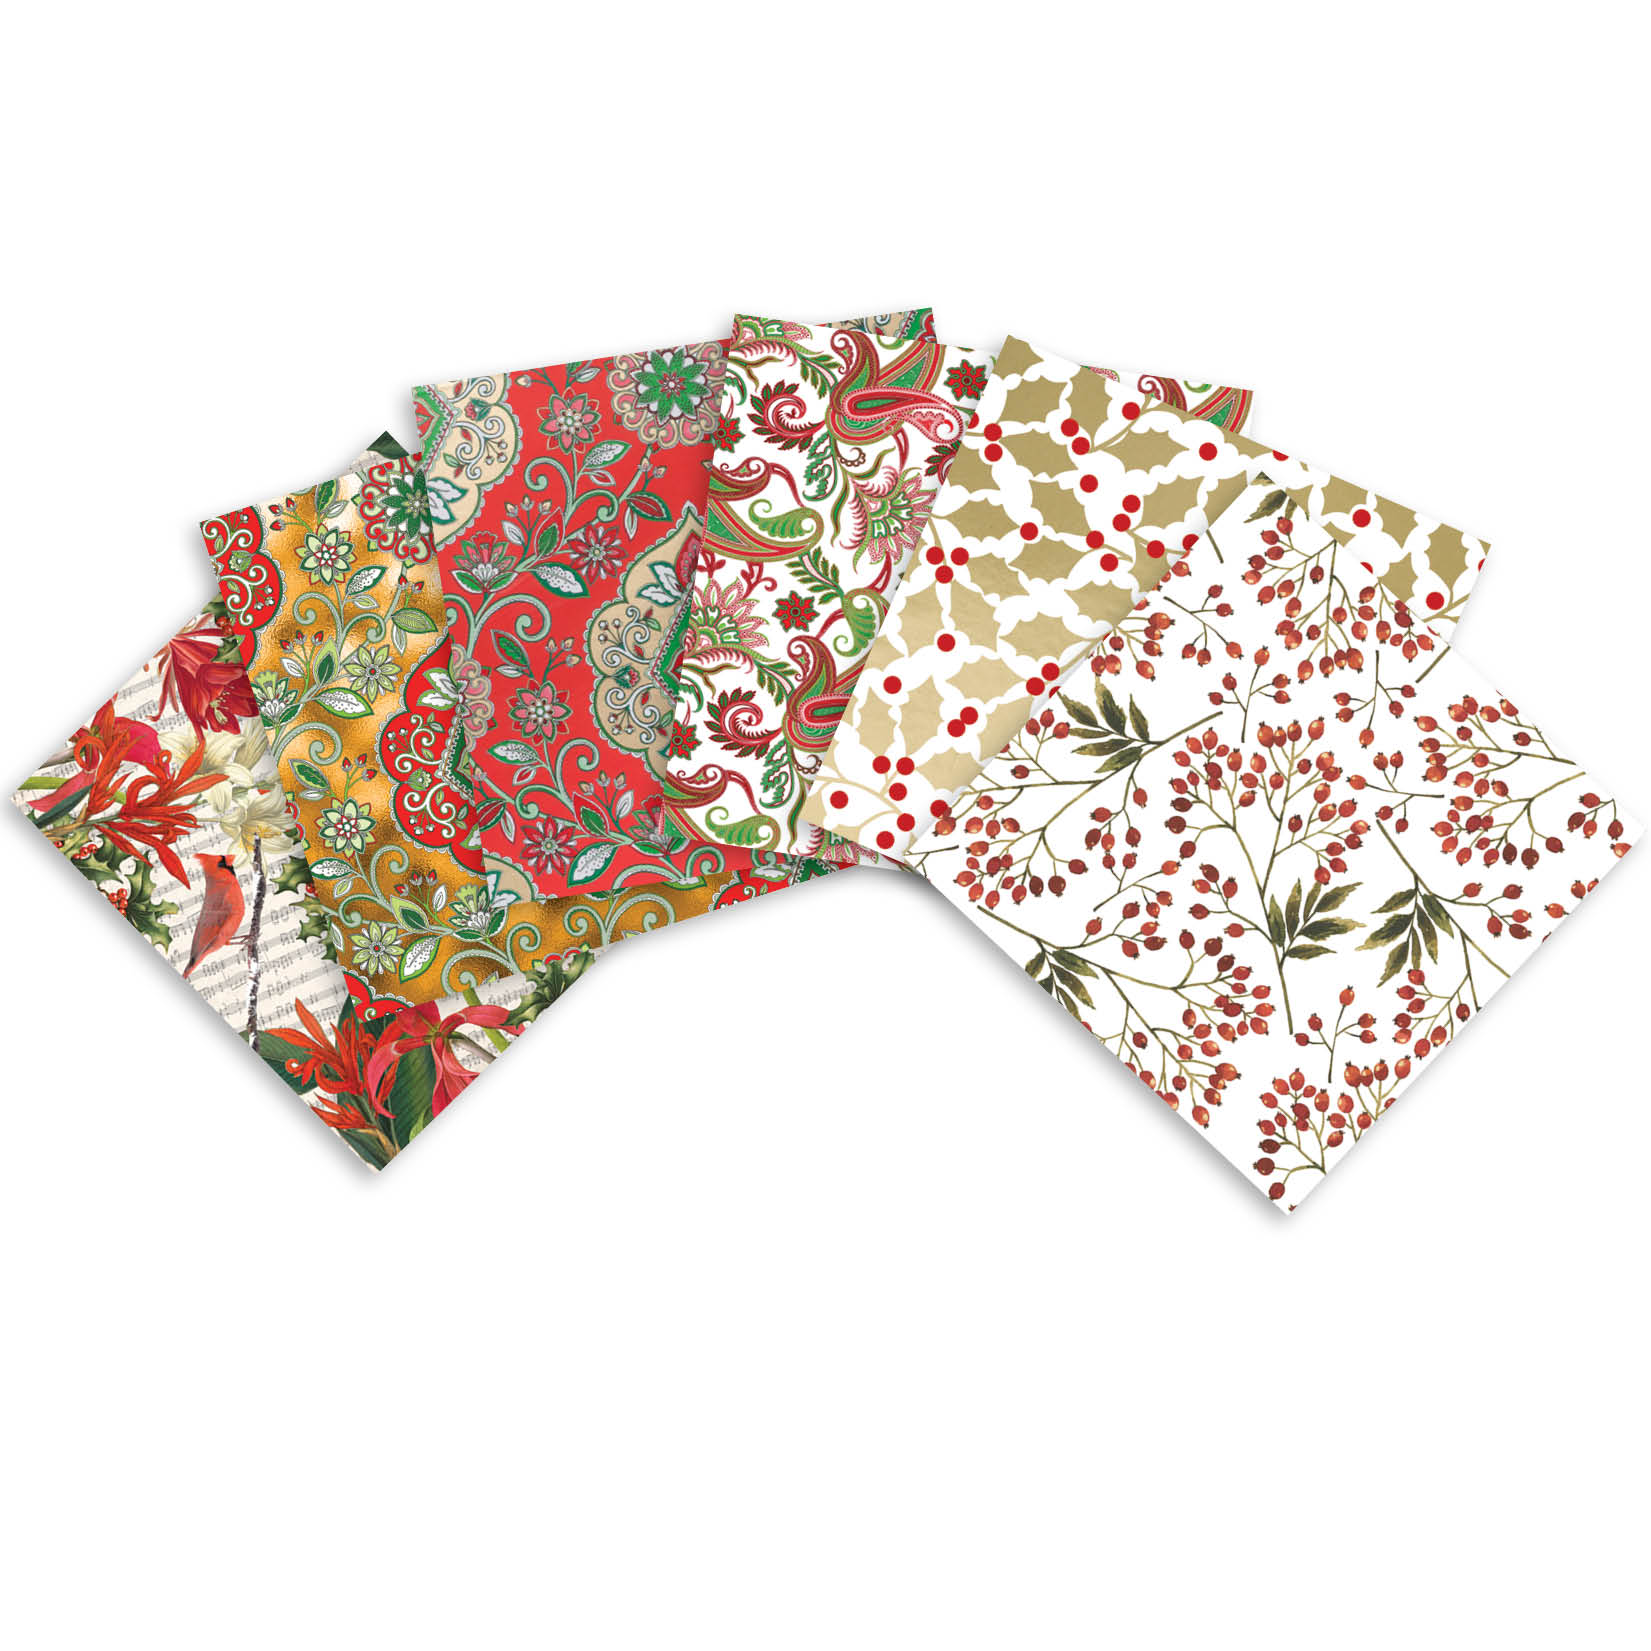 Jillson & Roberts Printed Gift Tissue Assortment, Christmas Designs (24 Sheets)